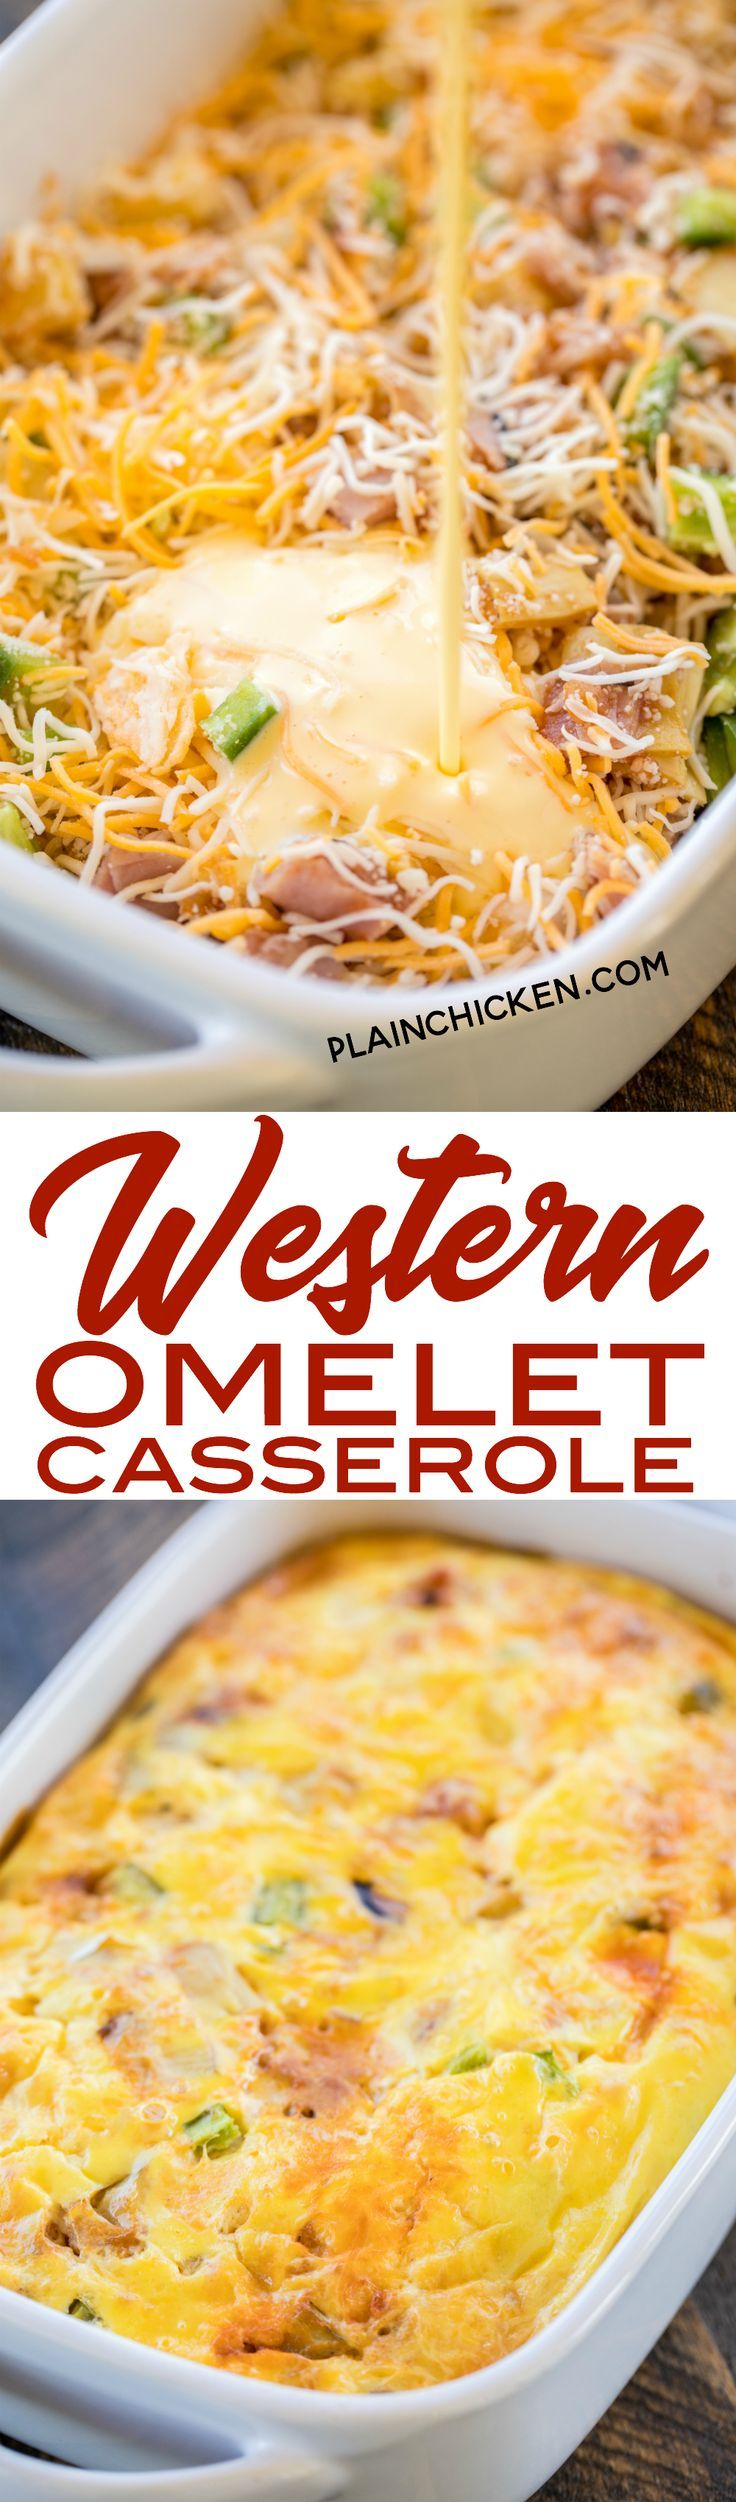 Western Omelet Casserole - perfect for breakfast, lunch or dinner. Ham, onion, bell pepper, artichokes, salsa, eggs, sour cream and cheese. No crust, so it is a great low-carb option. Only 4.5 Weight Watcher points per serving!! #casserole #omelet #breakf